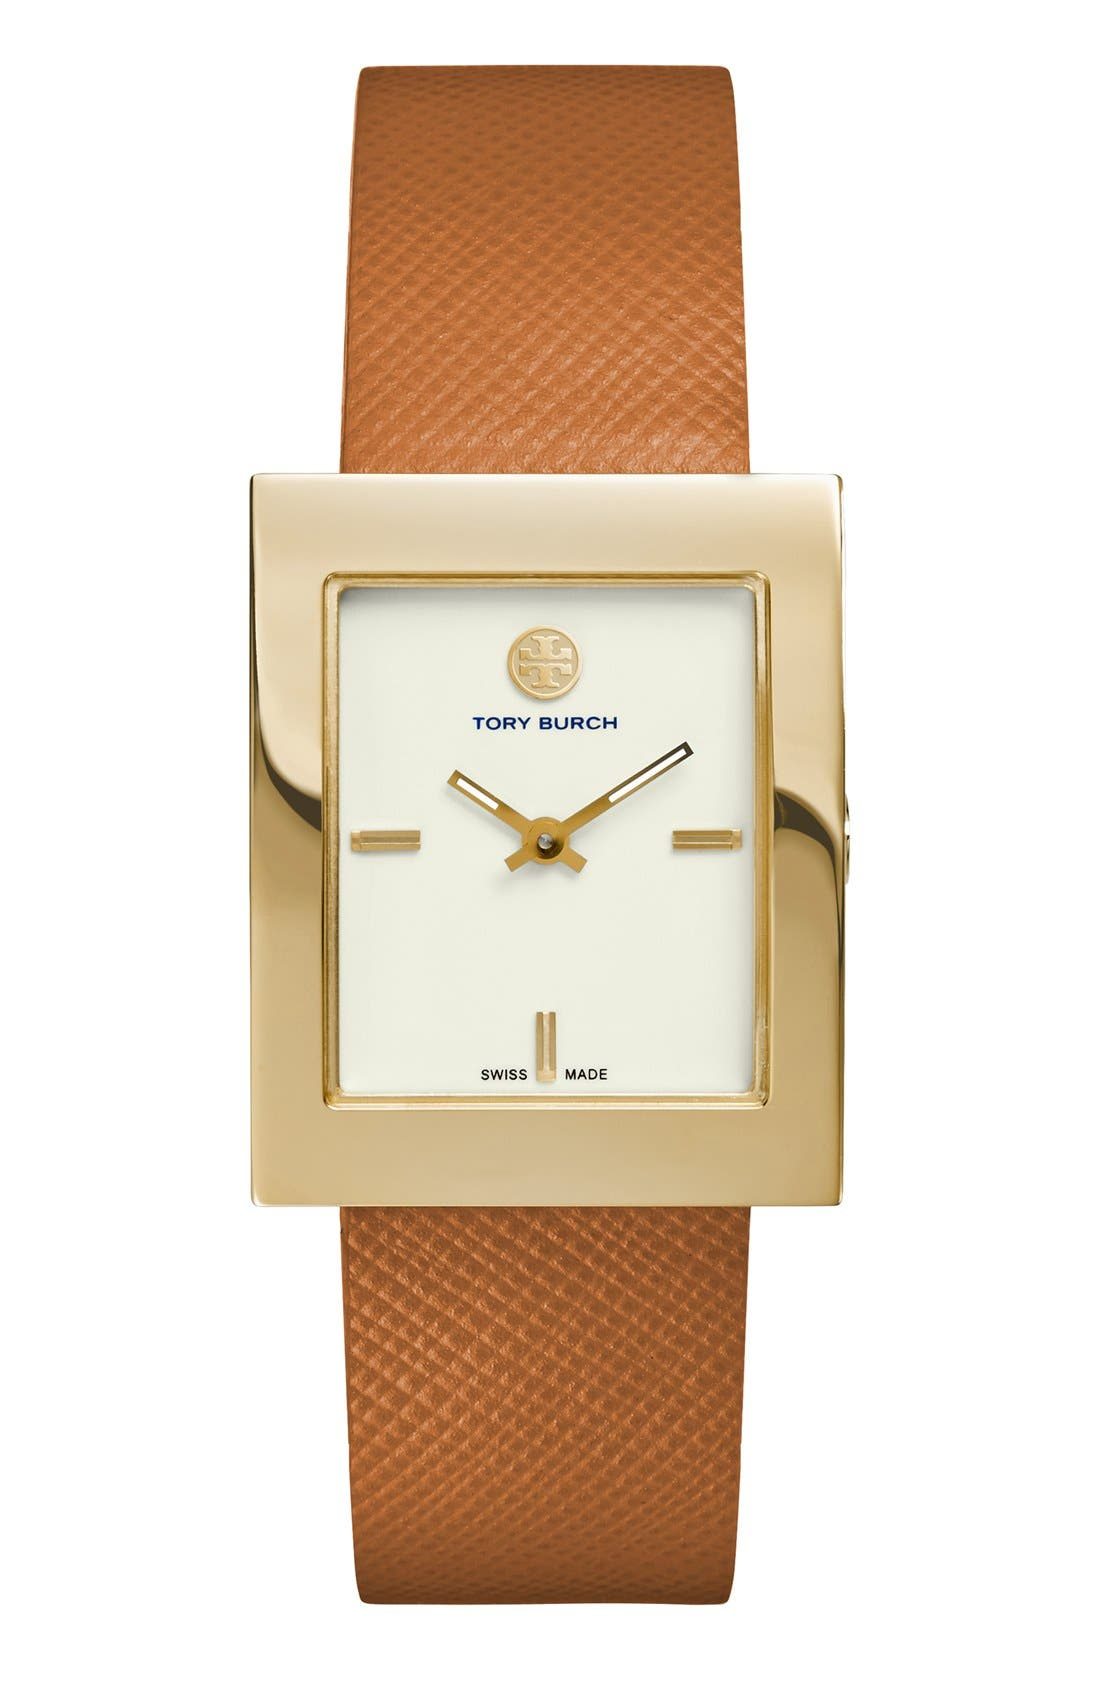 Main Image - Tory Burch 'Buddy Classic' Rectangular Saffiano Leather Strap Watch, 26mm x 32mm